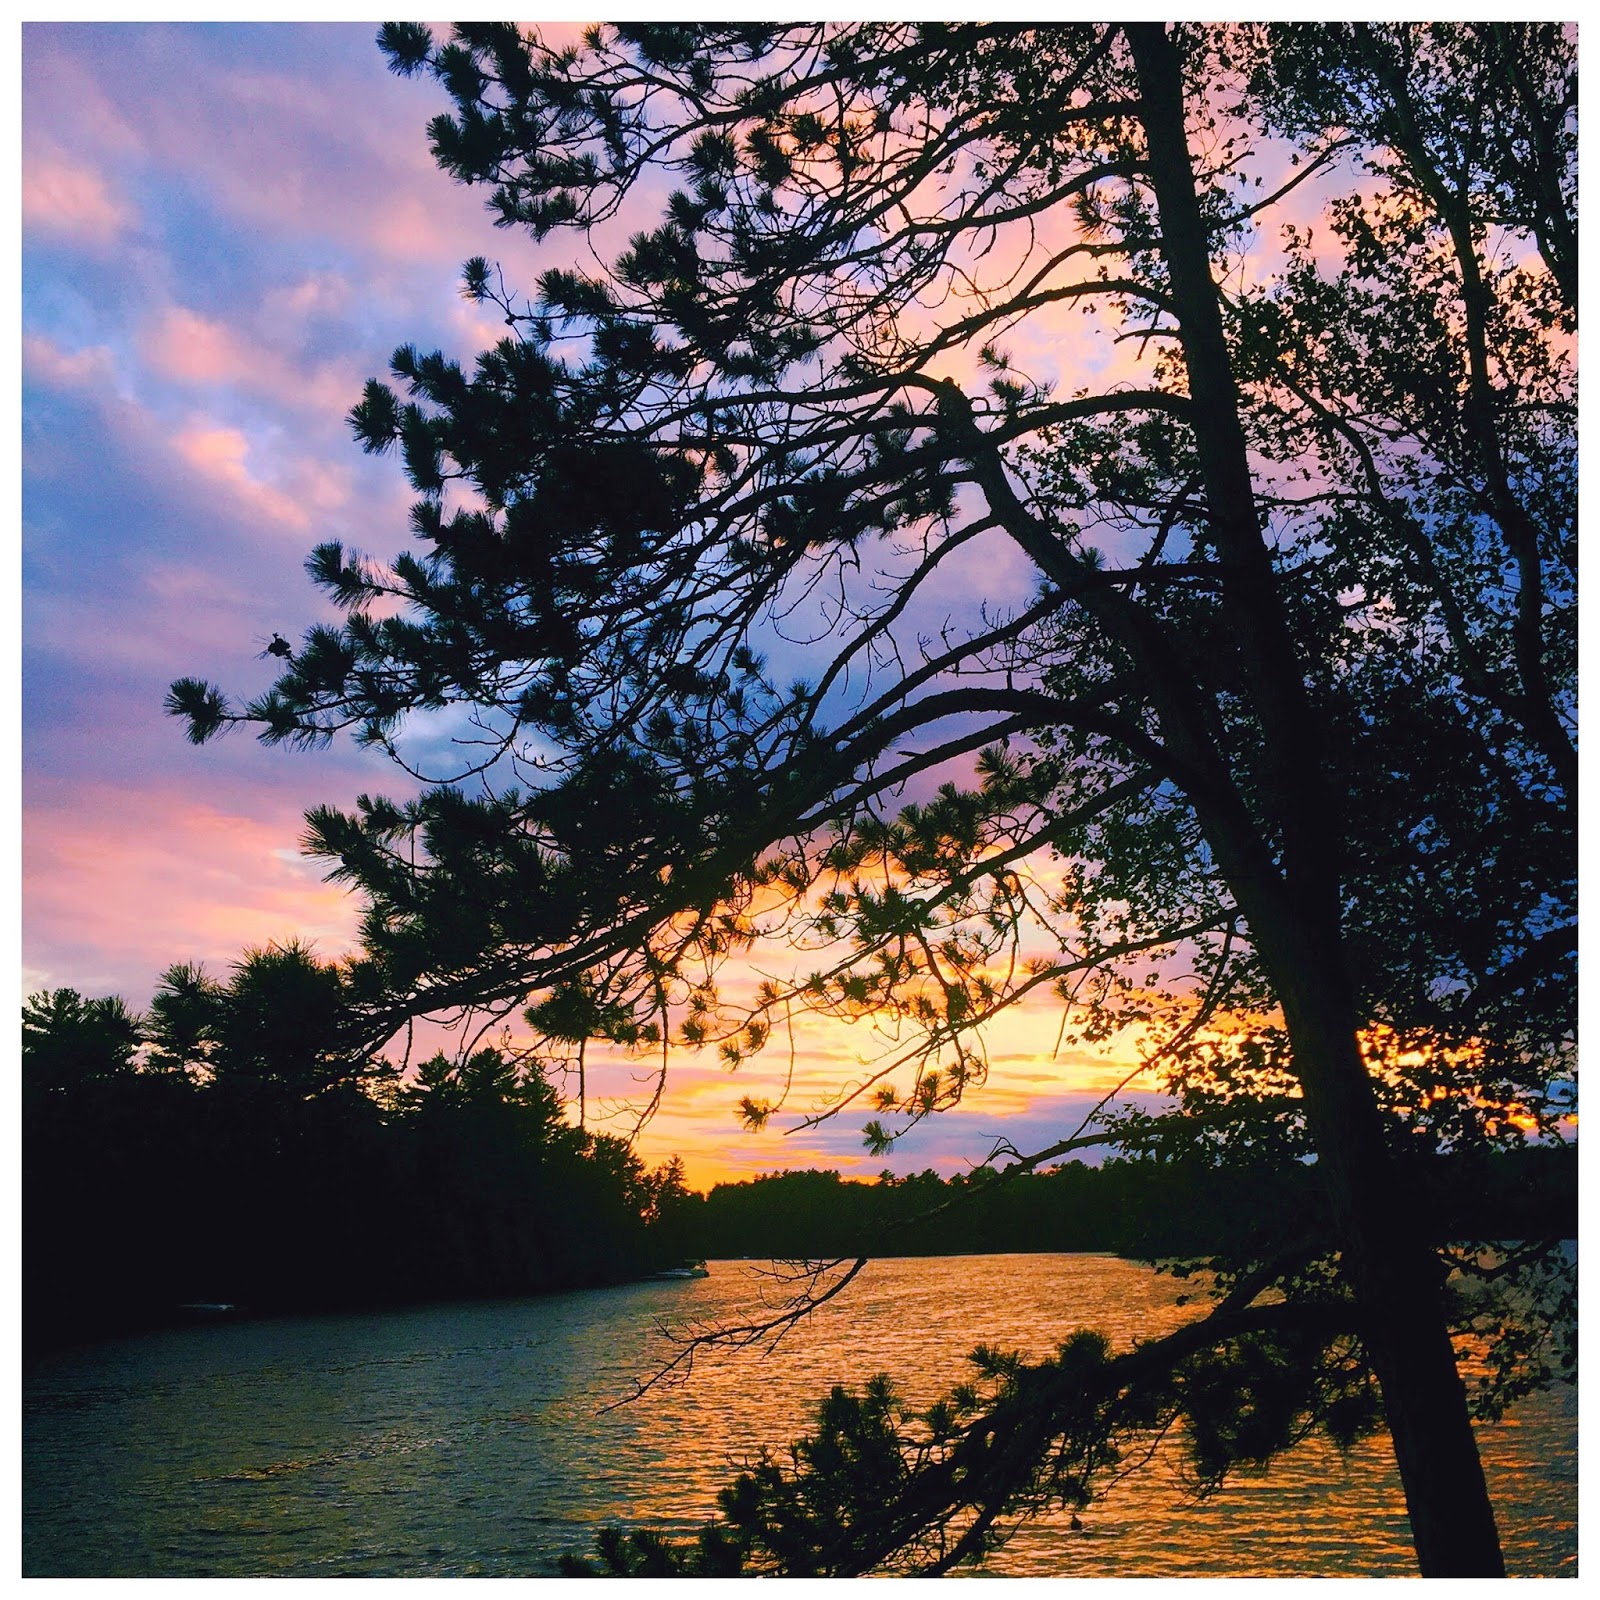 muskoka cottage country toronto canada ontario sunset colourful